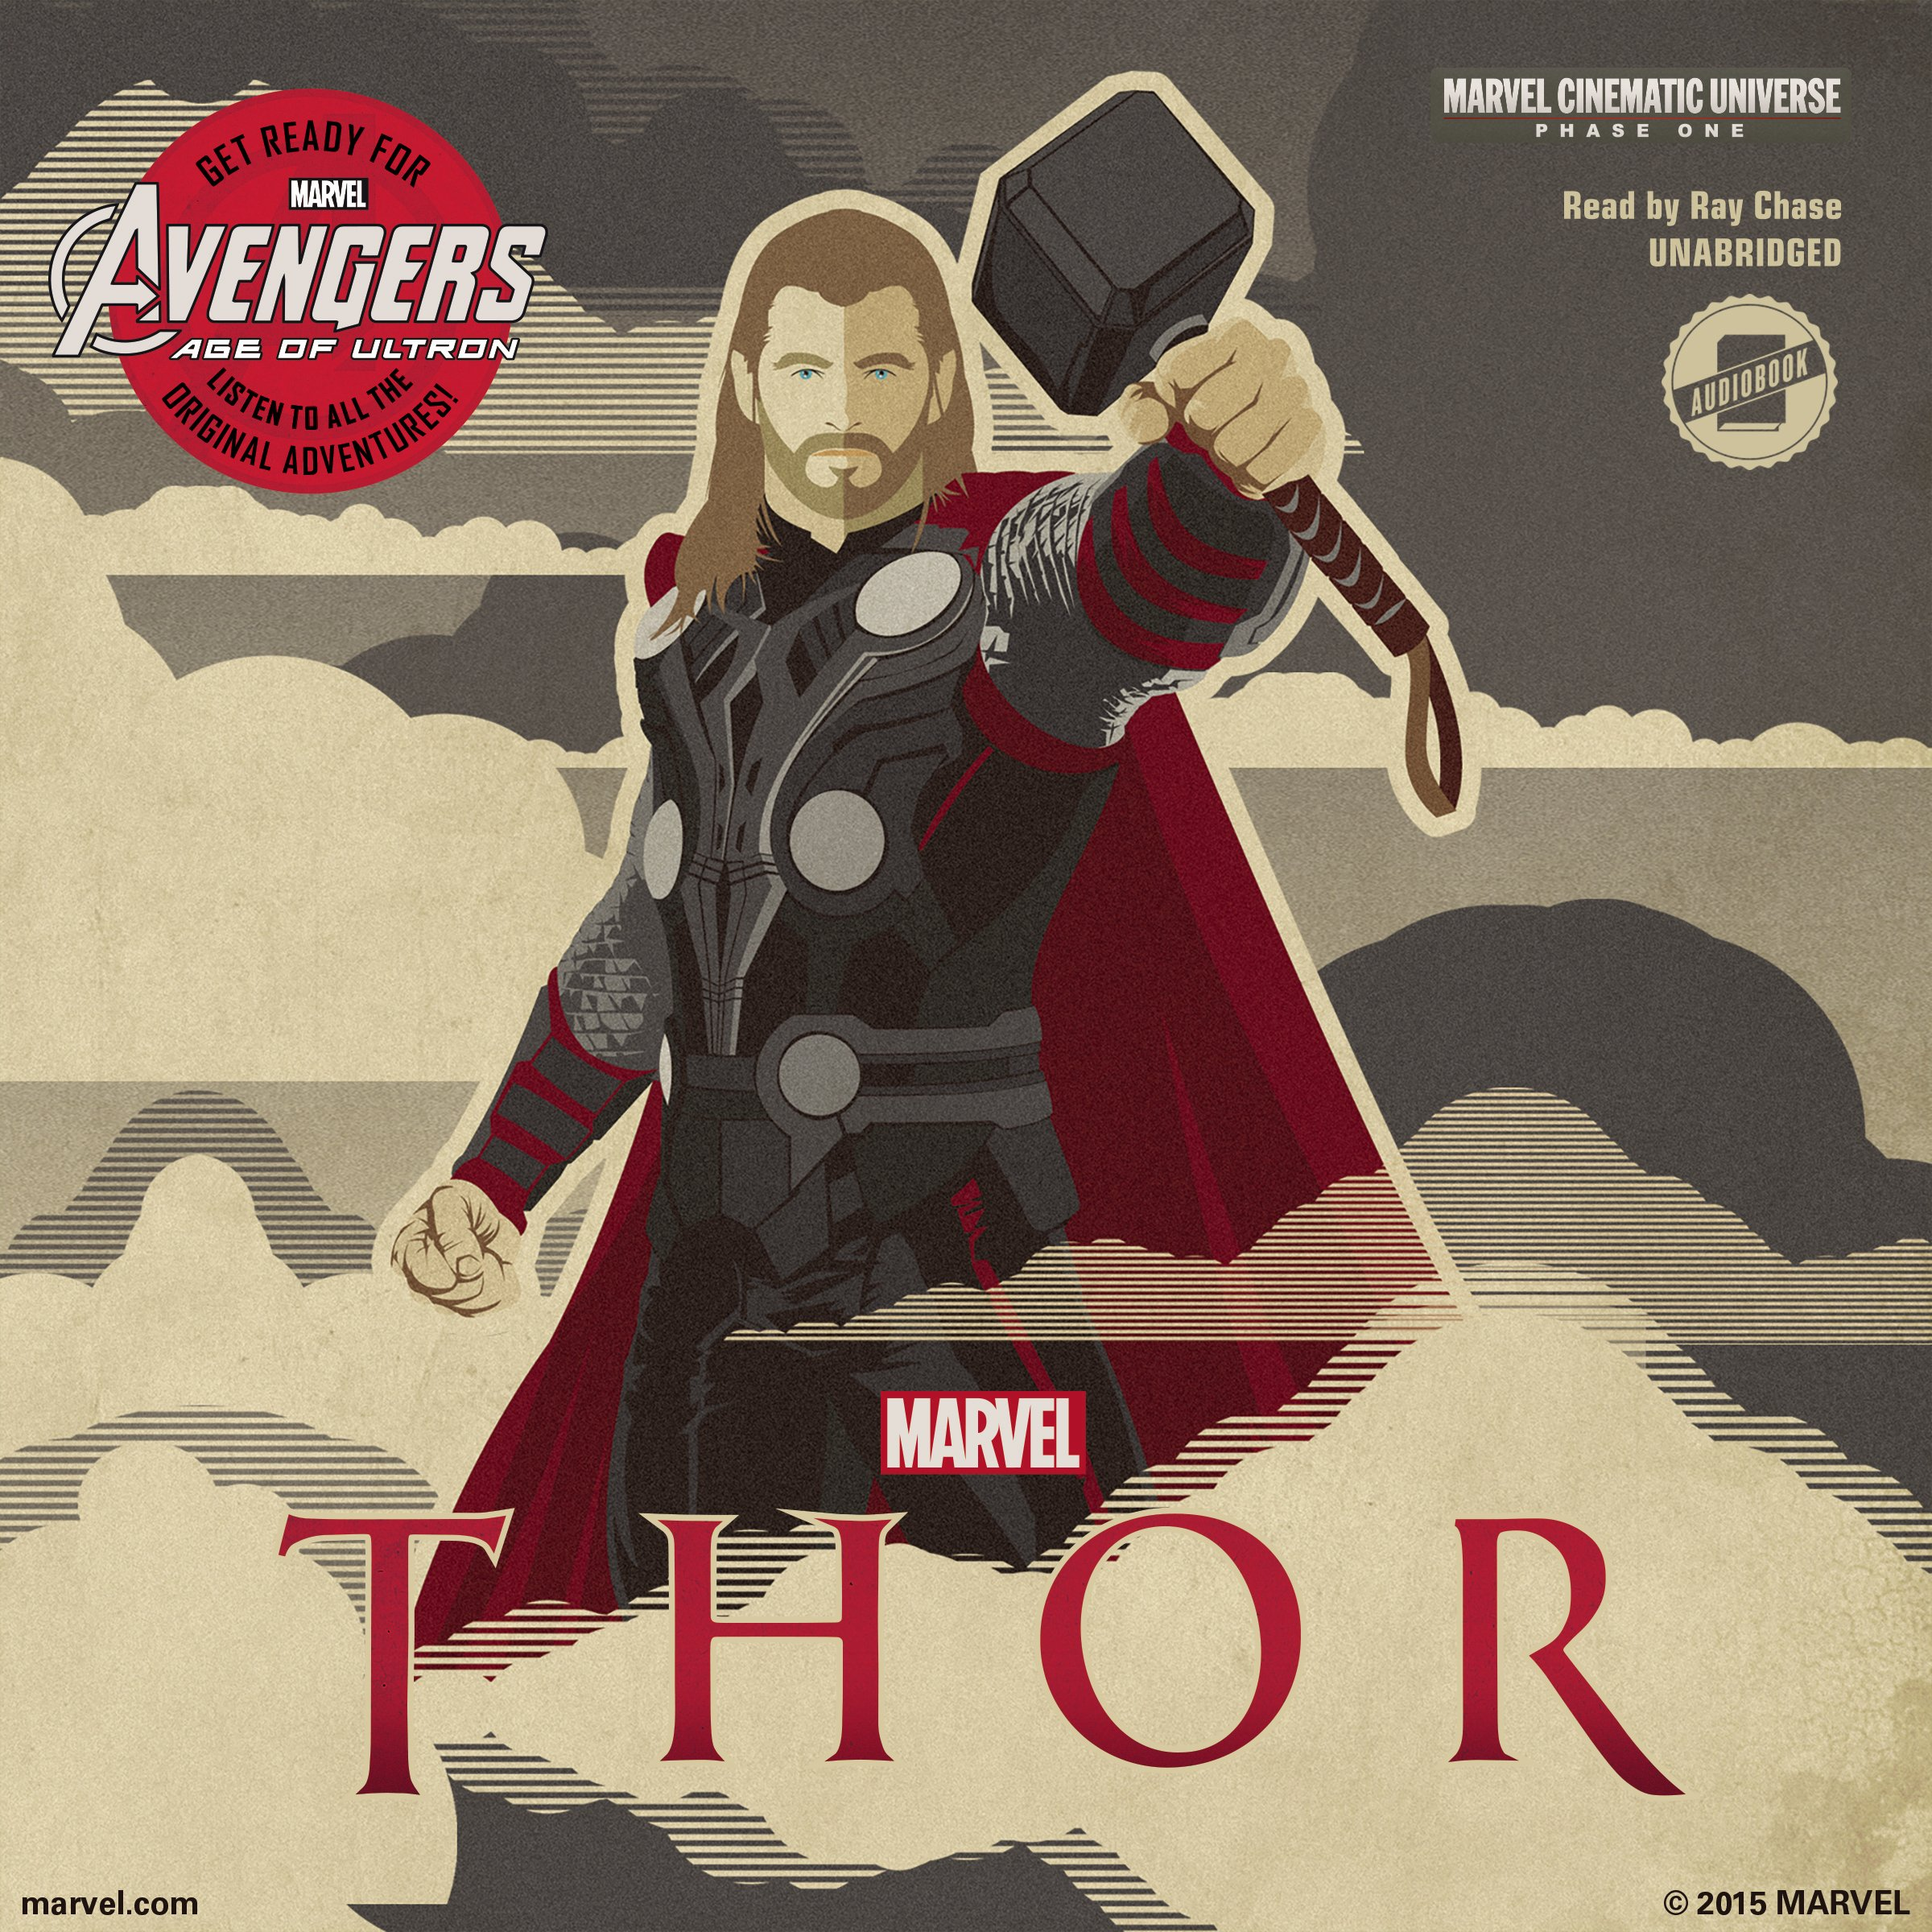 Marvel's Avengers Phase One: Thor (Marvel's Cinematic Universe, Phase One)